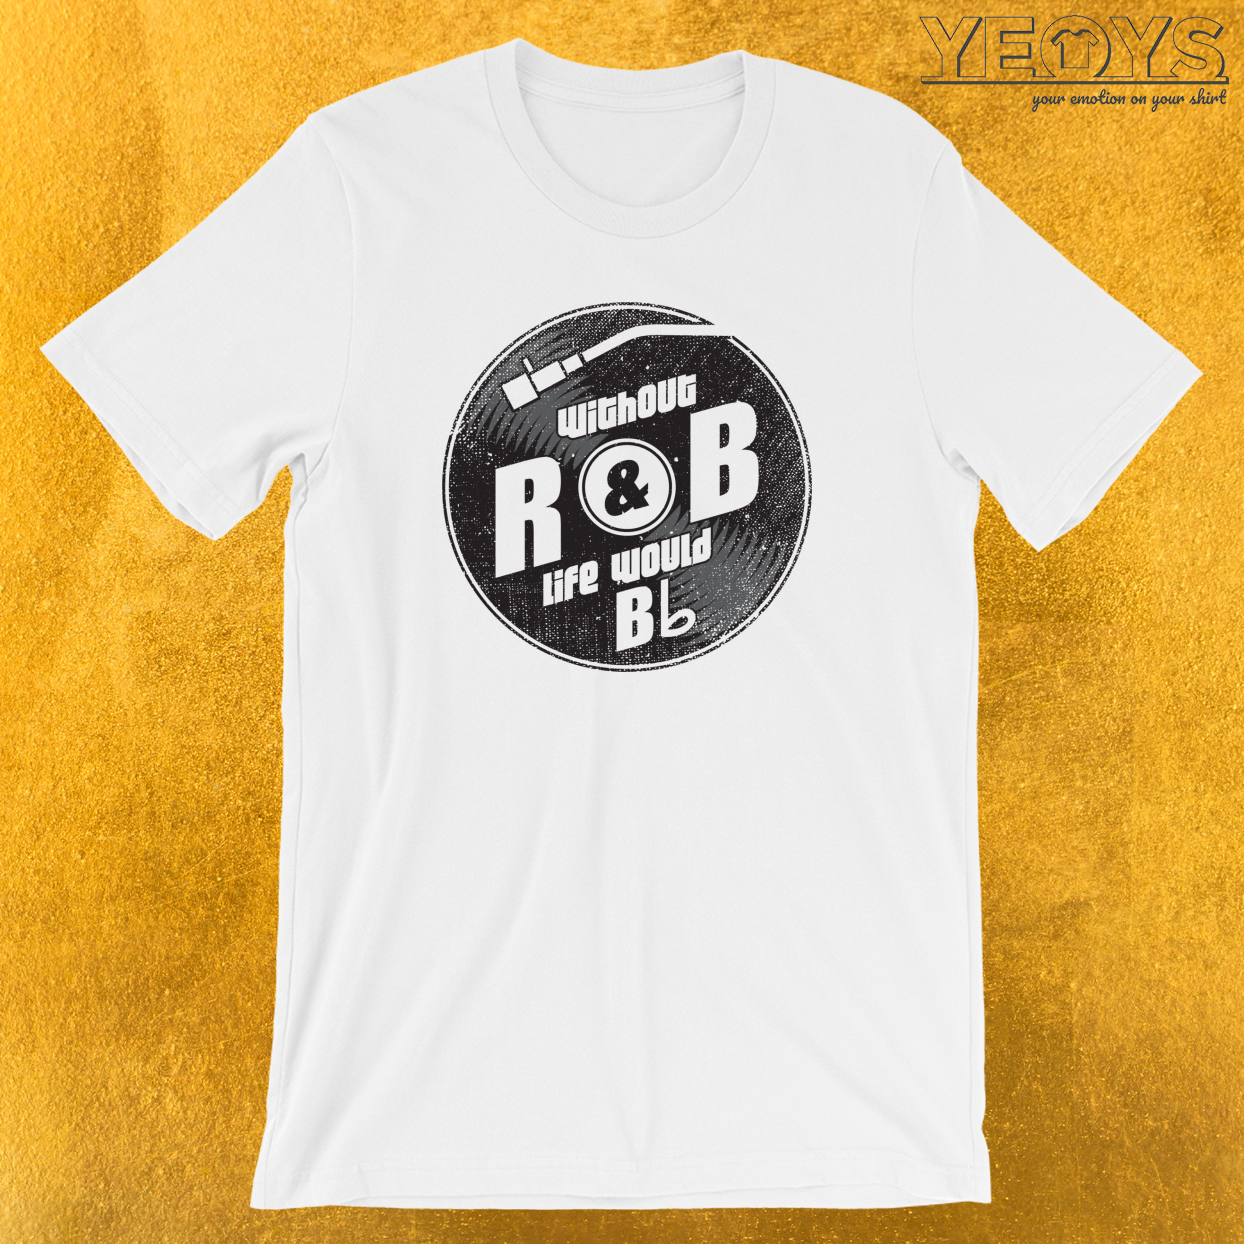 Without R&B Life Would B Flat T-Shirt